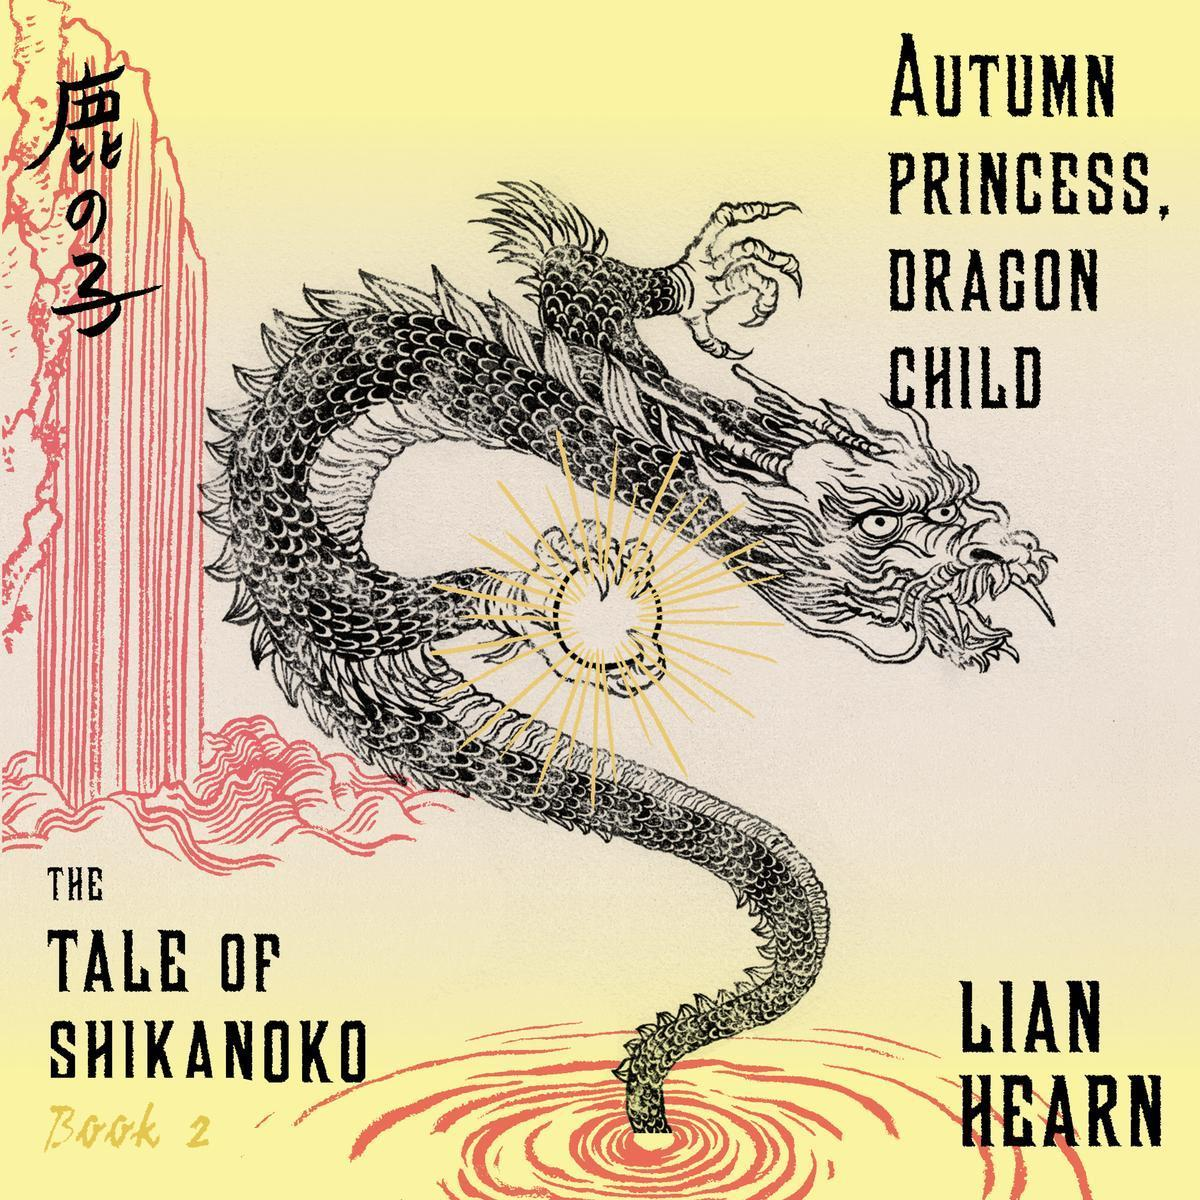 Printable Autumn Princess, Dragon Child: Tale of Shikanoko, Book 2 Audiobook Cover Art